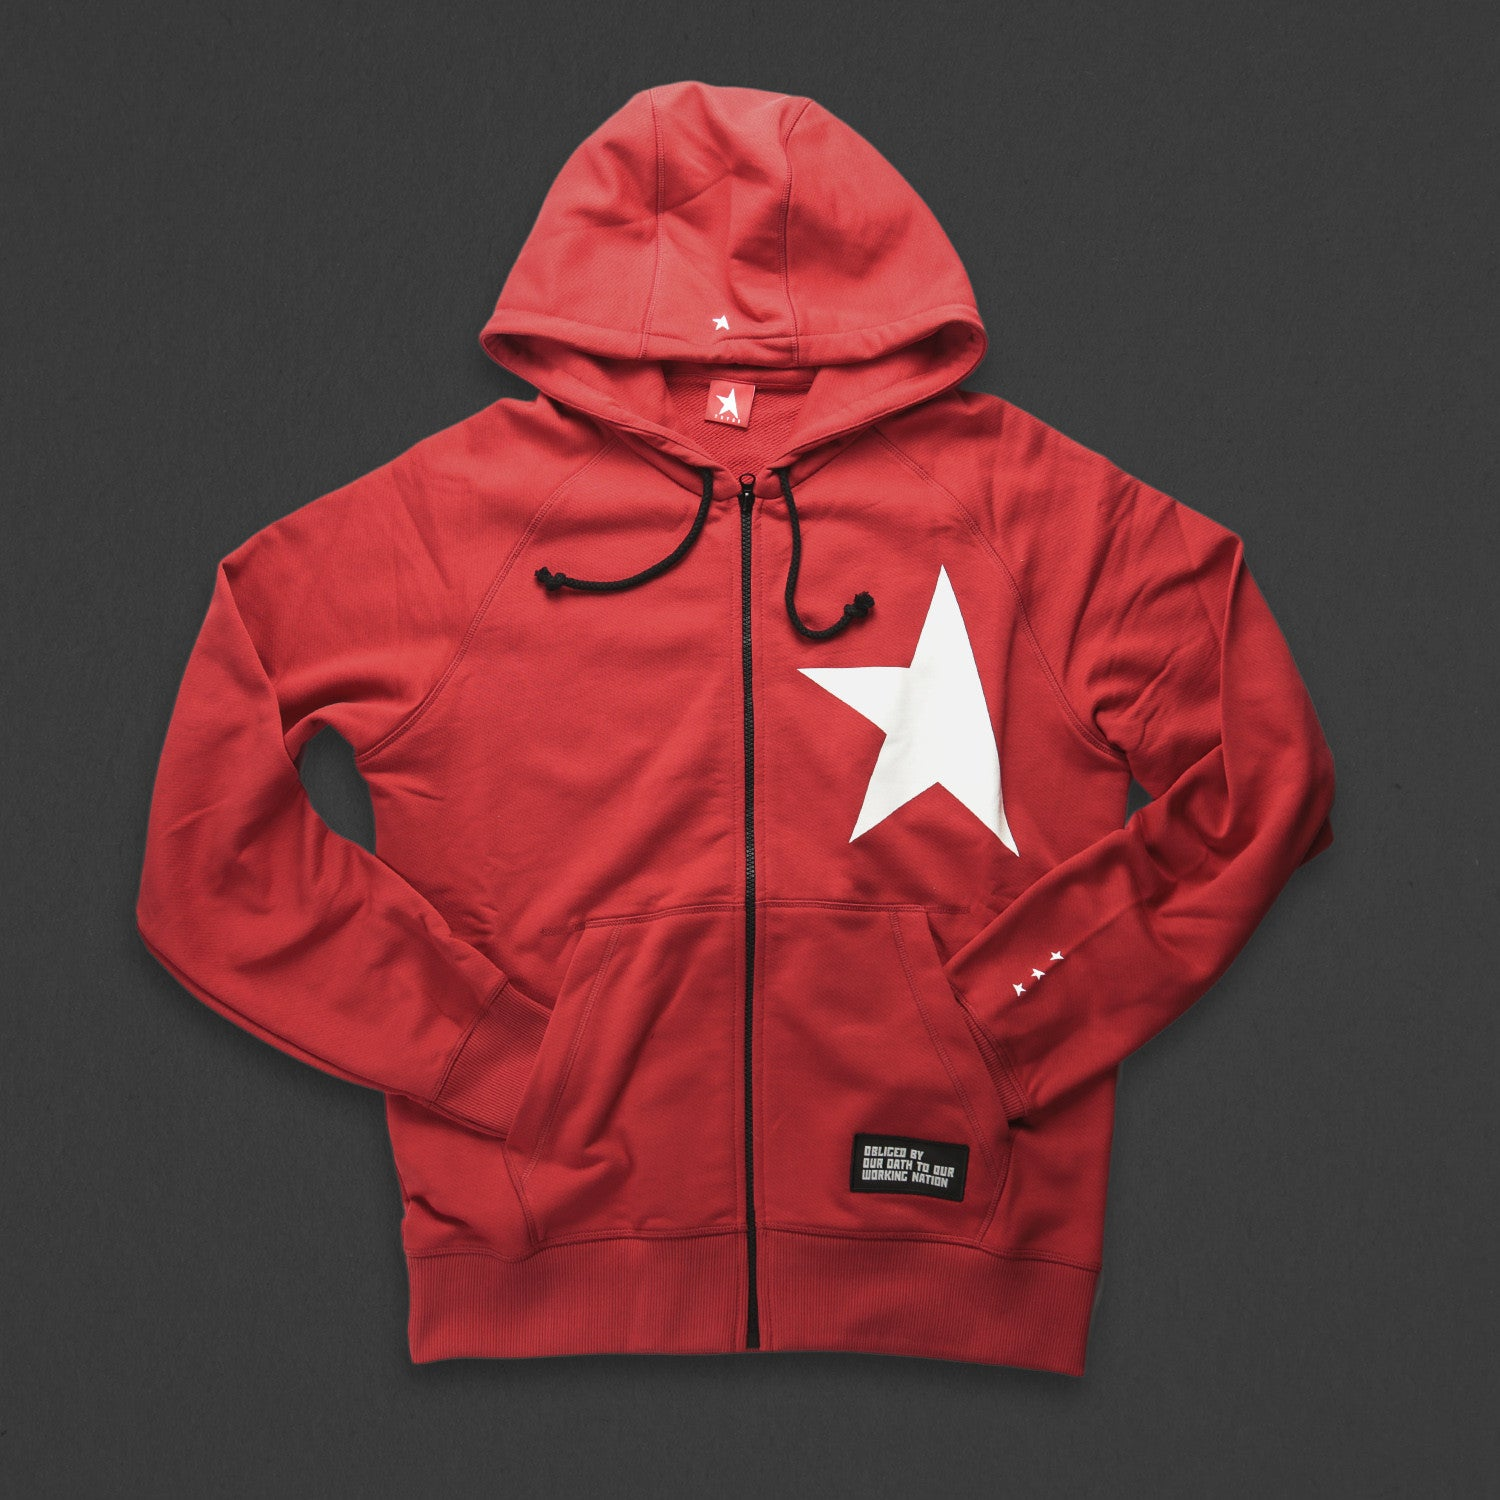 7th hoodie+zip red/white with TITOS star logo